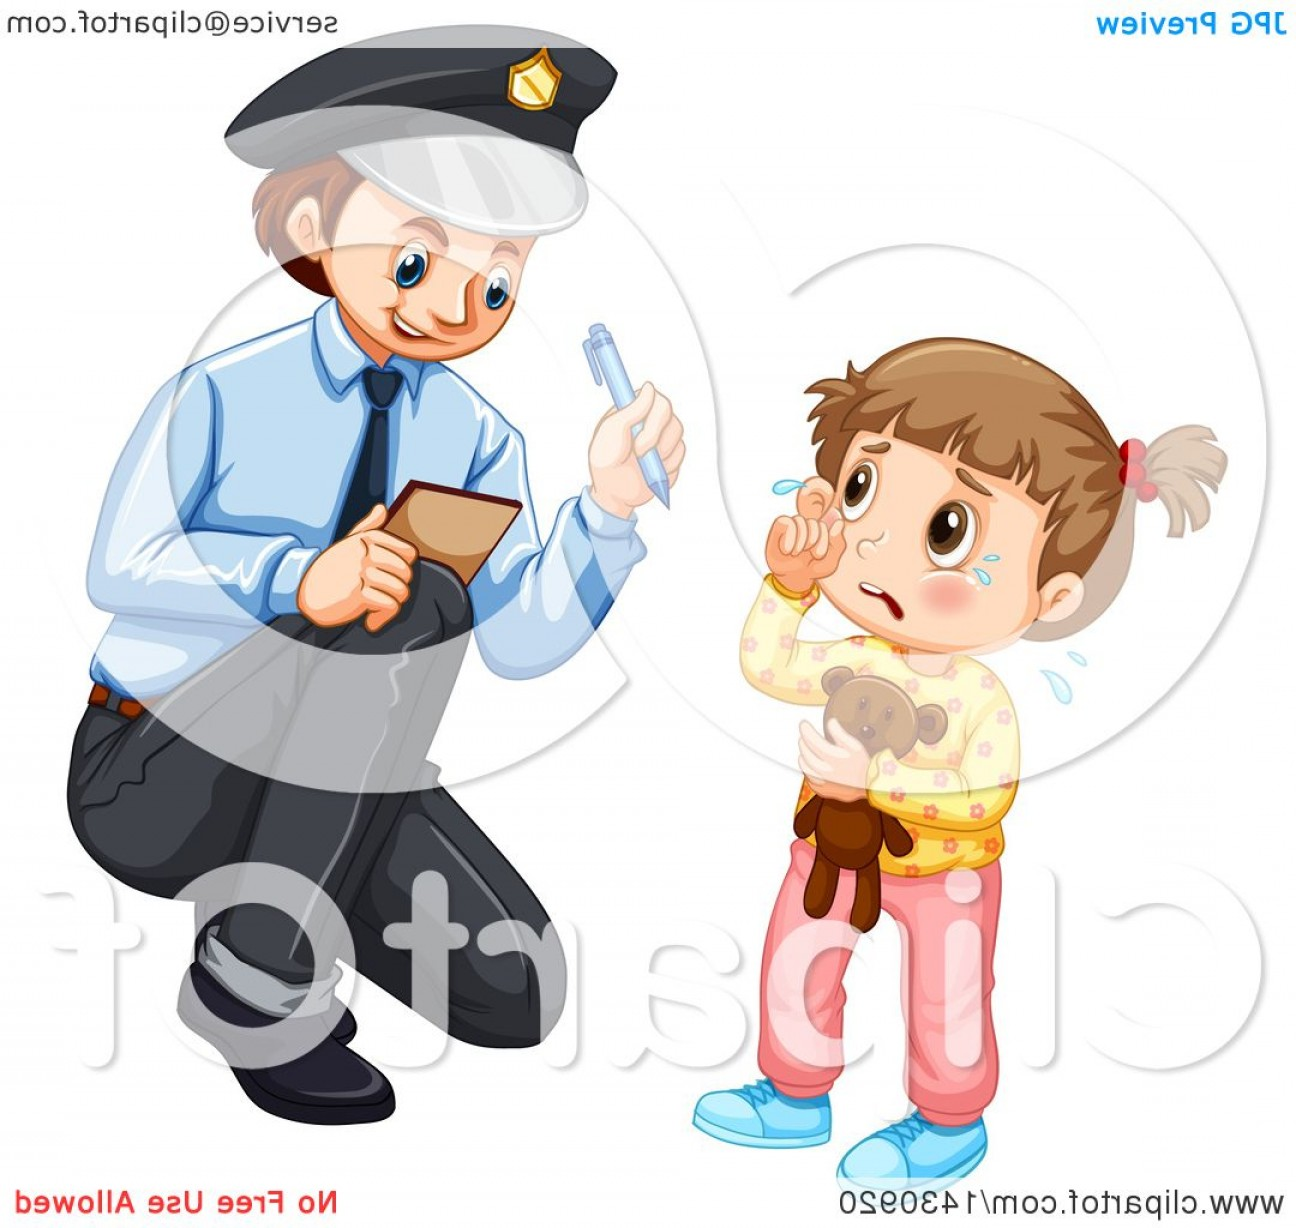 Vector Police Officer Kneeling: Lost Girl Crying And Talking To A Police Officer